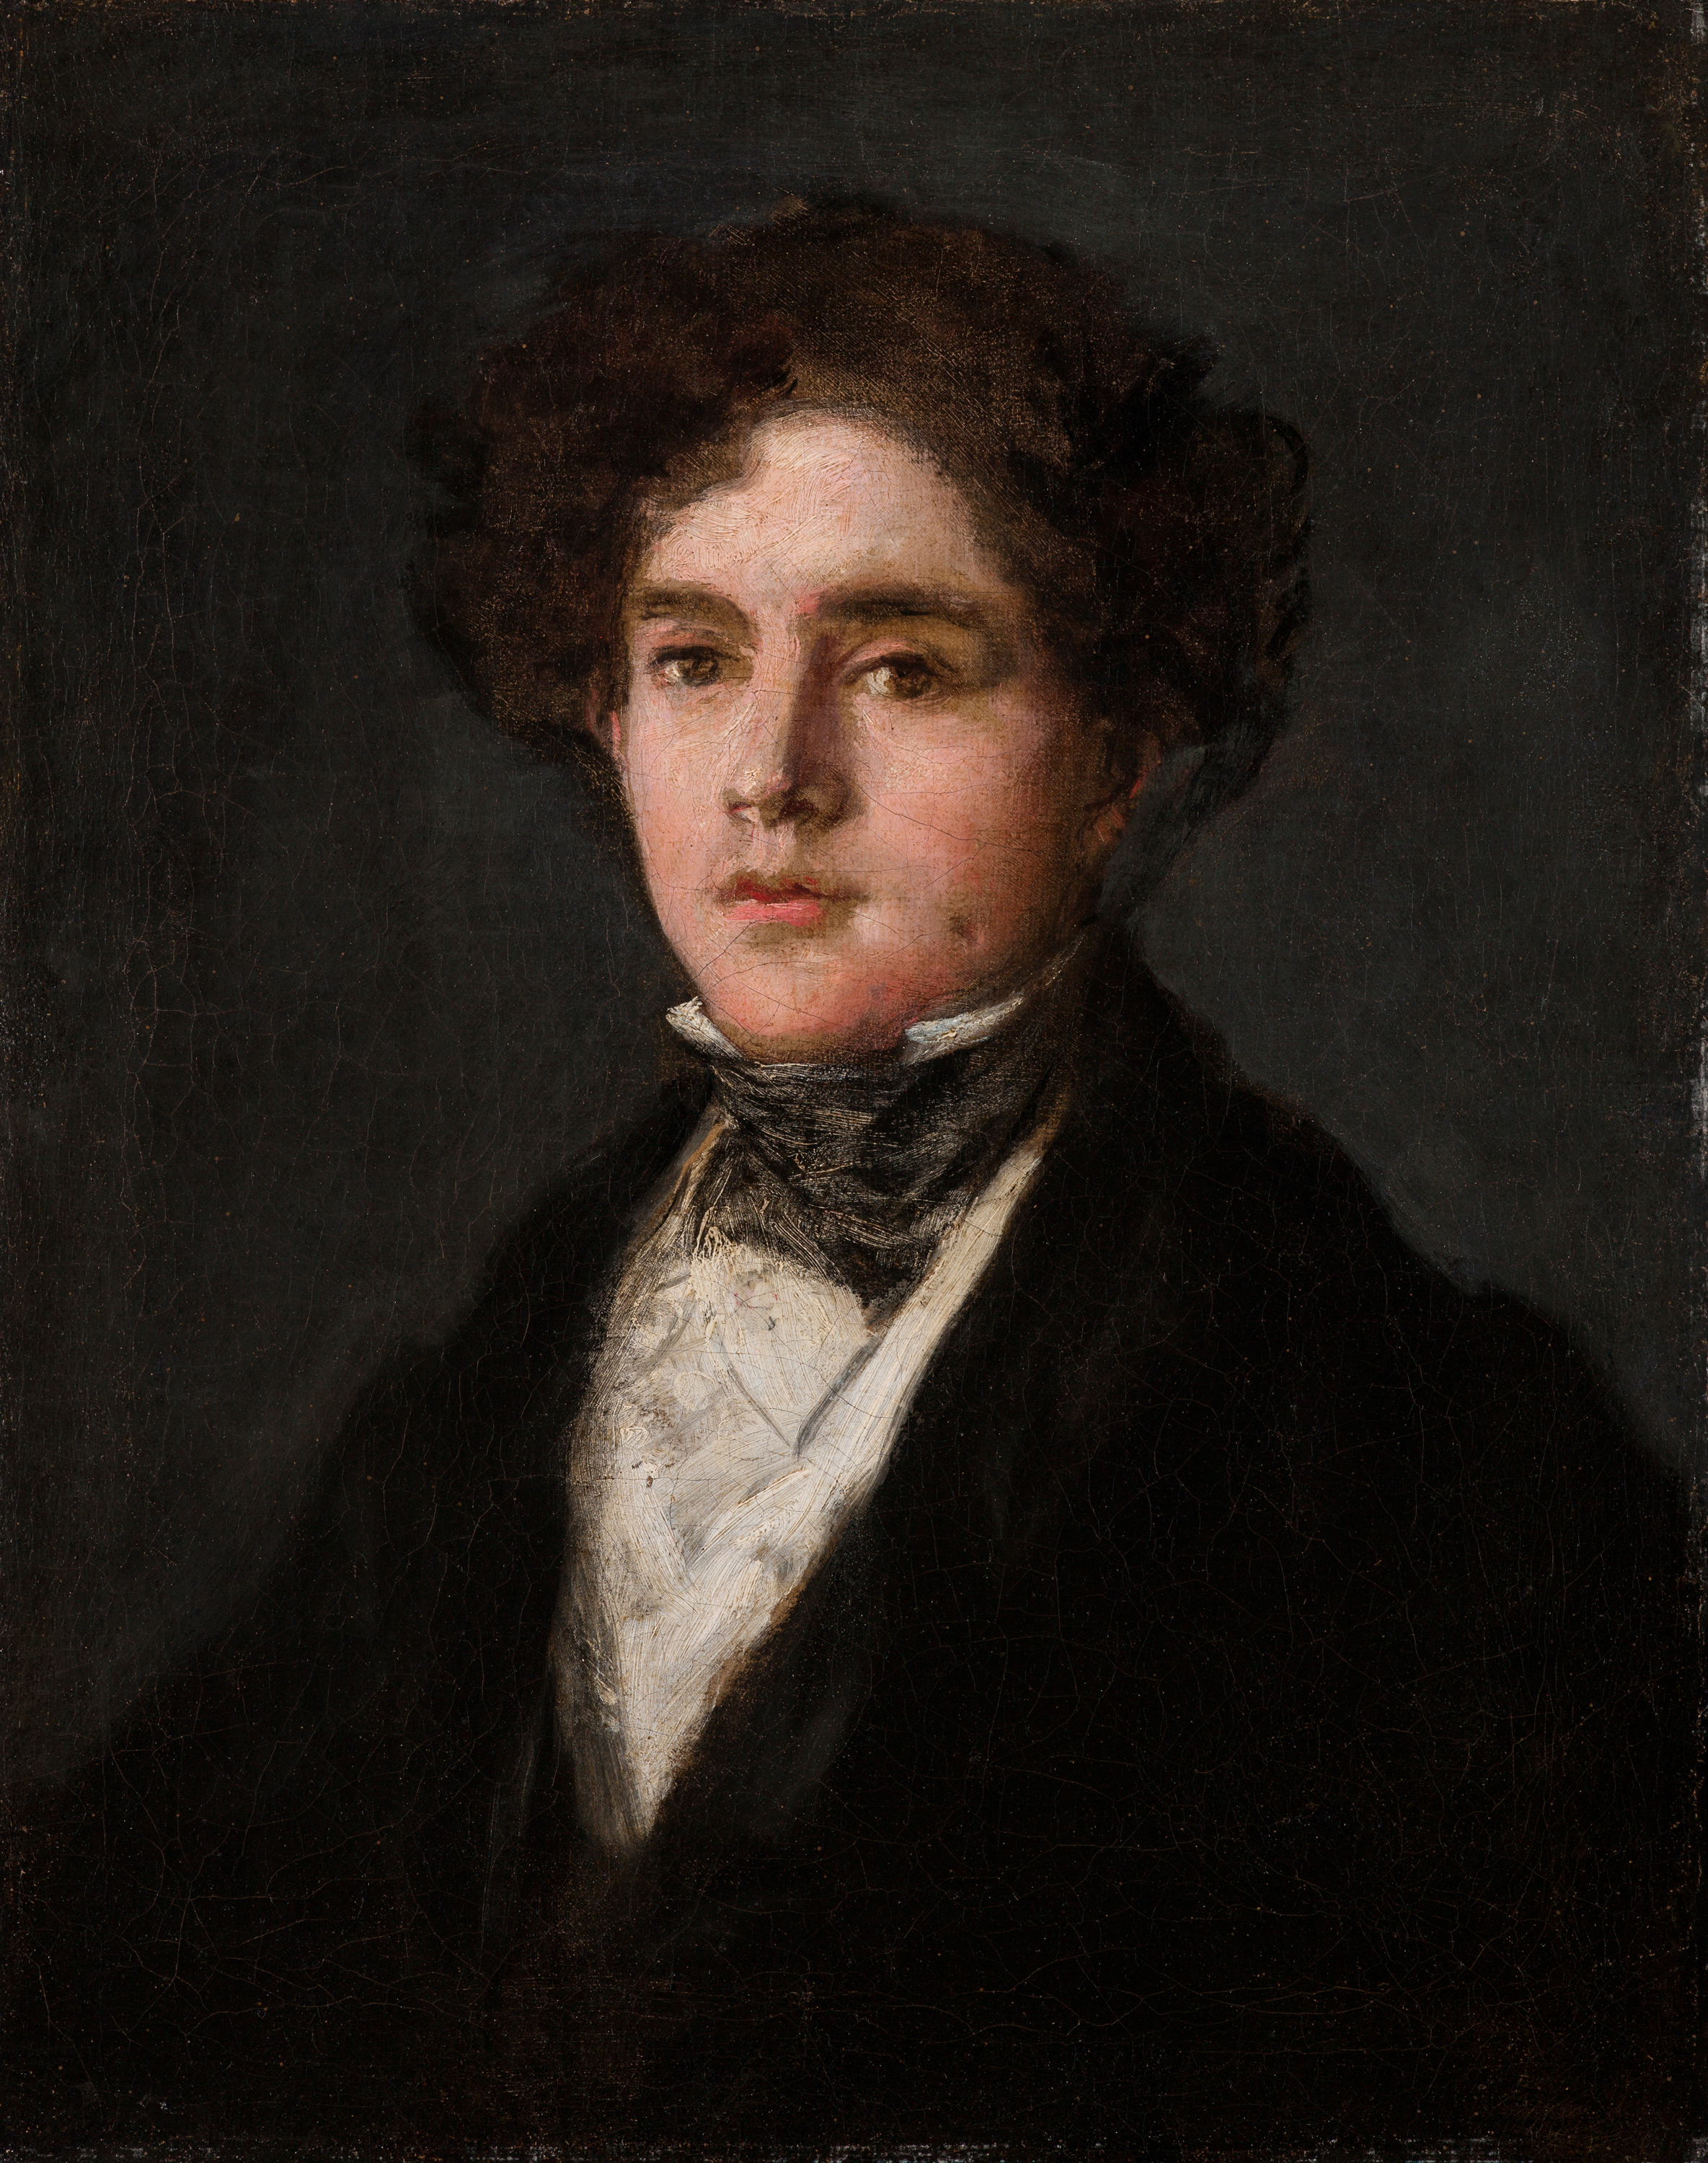 Francisco José de Goya y Lucientes (1746-1828), Portrait of Mariano Goya, the Artist's Grandson, 1827, oil on canvas. Meadows Museum, SMU, Dallas. Museum